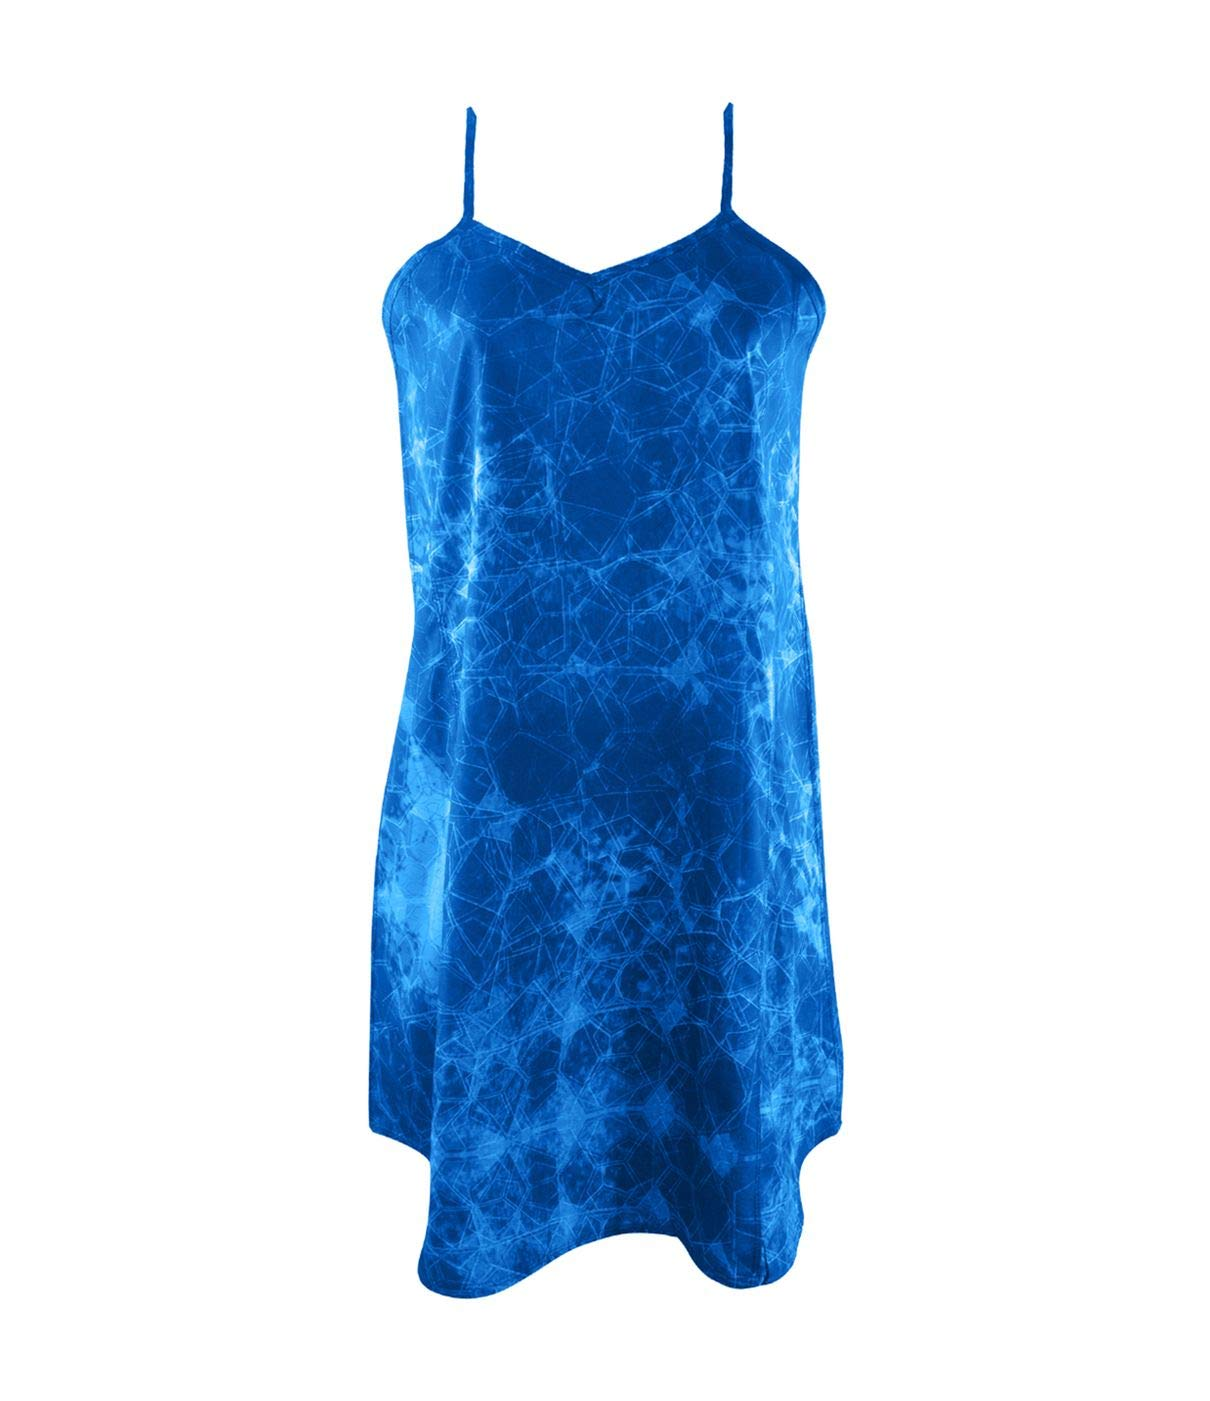 PELAGIC Balboa Performance Dress - Hex | Small | Blue by PELAGIC